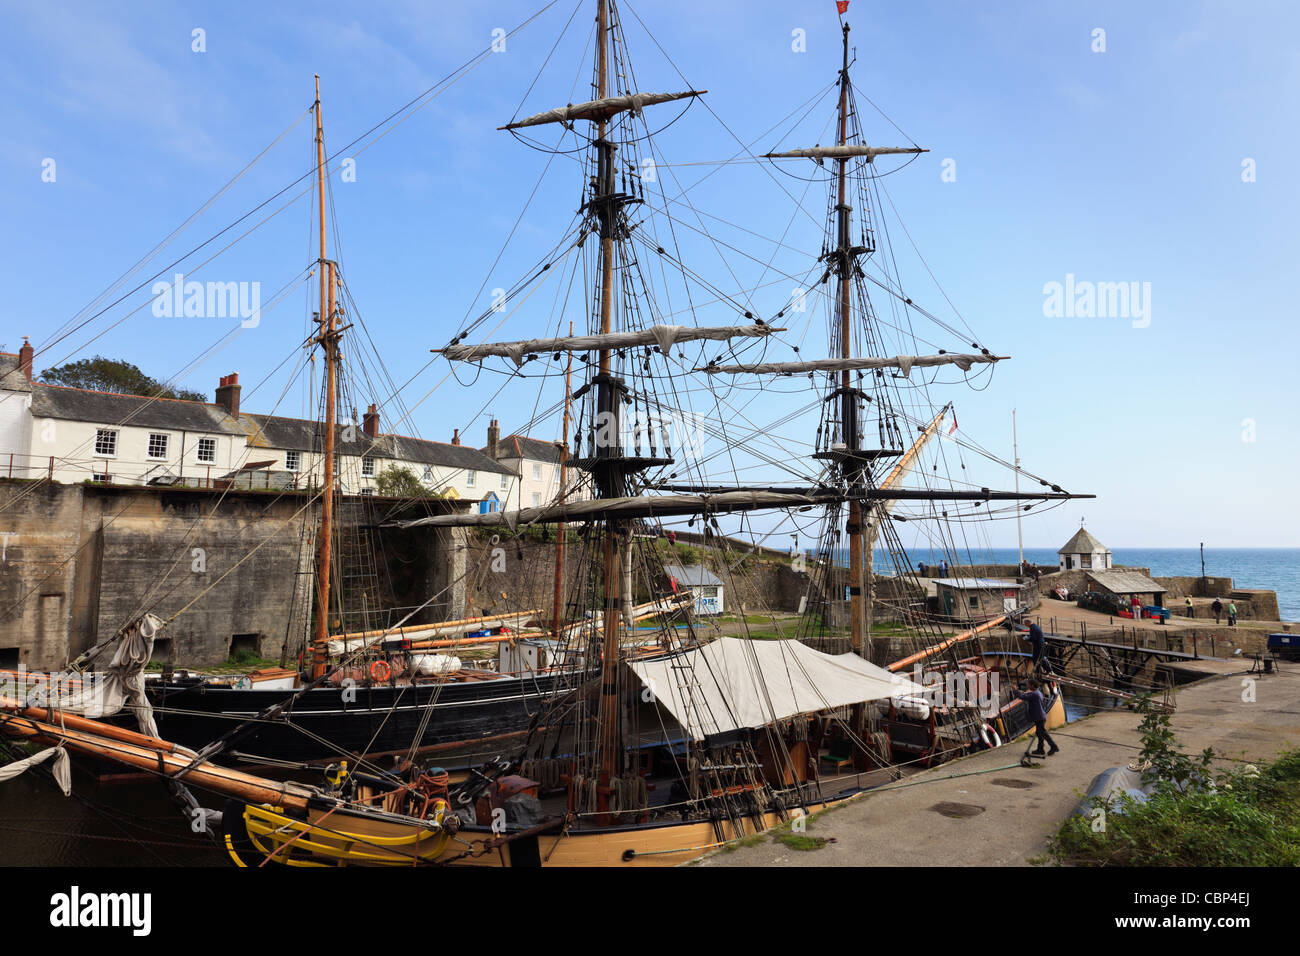 Pheonix and other Tall Ships in the inner harbour with old cottages on the quayside. Charlestown, Cornwall, England, - Stock Image